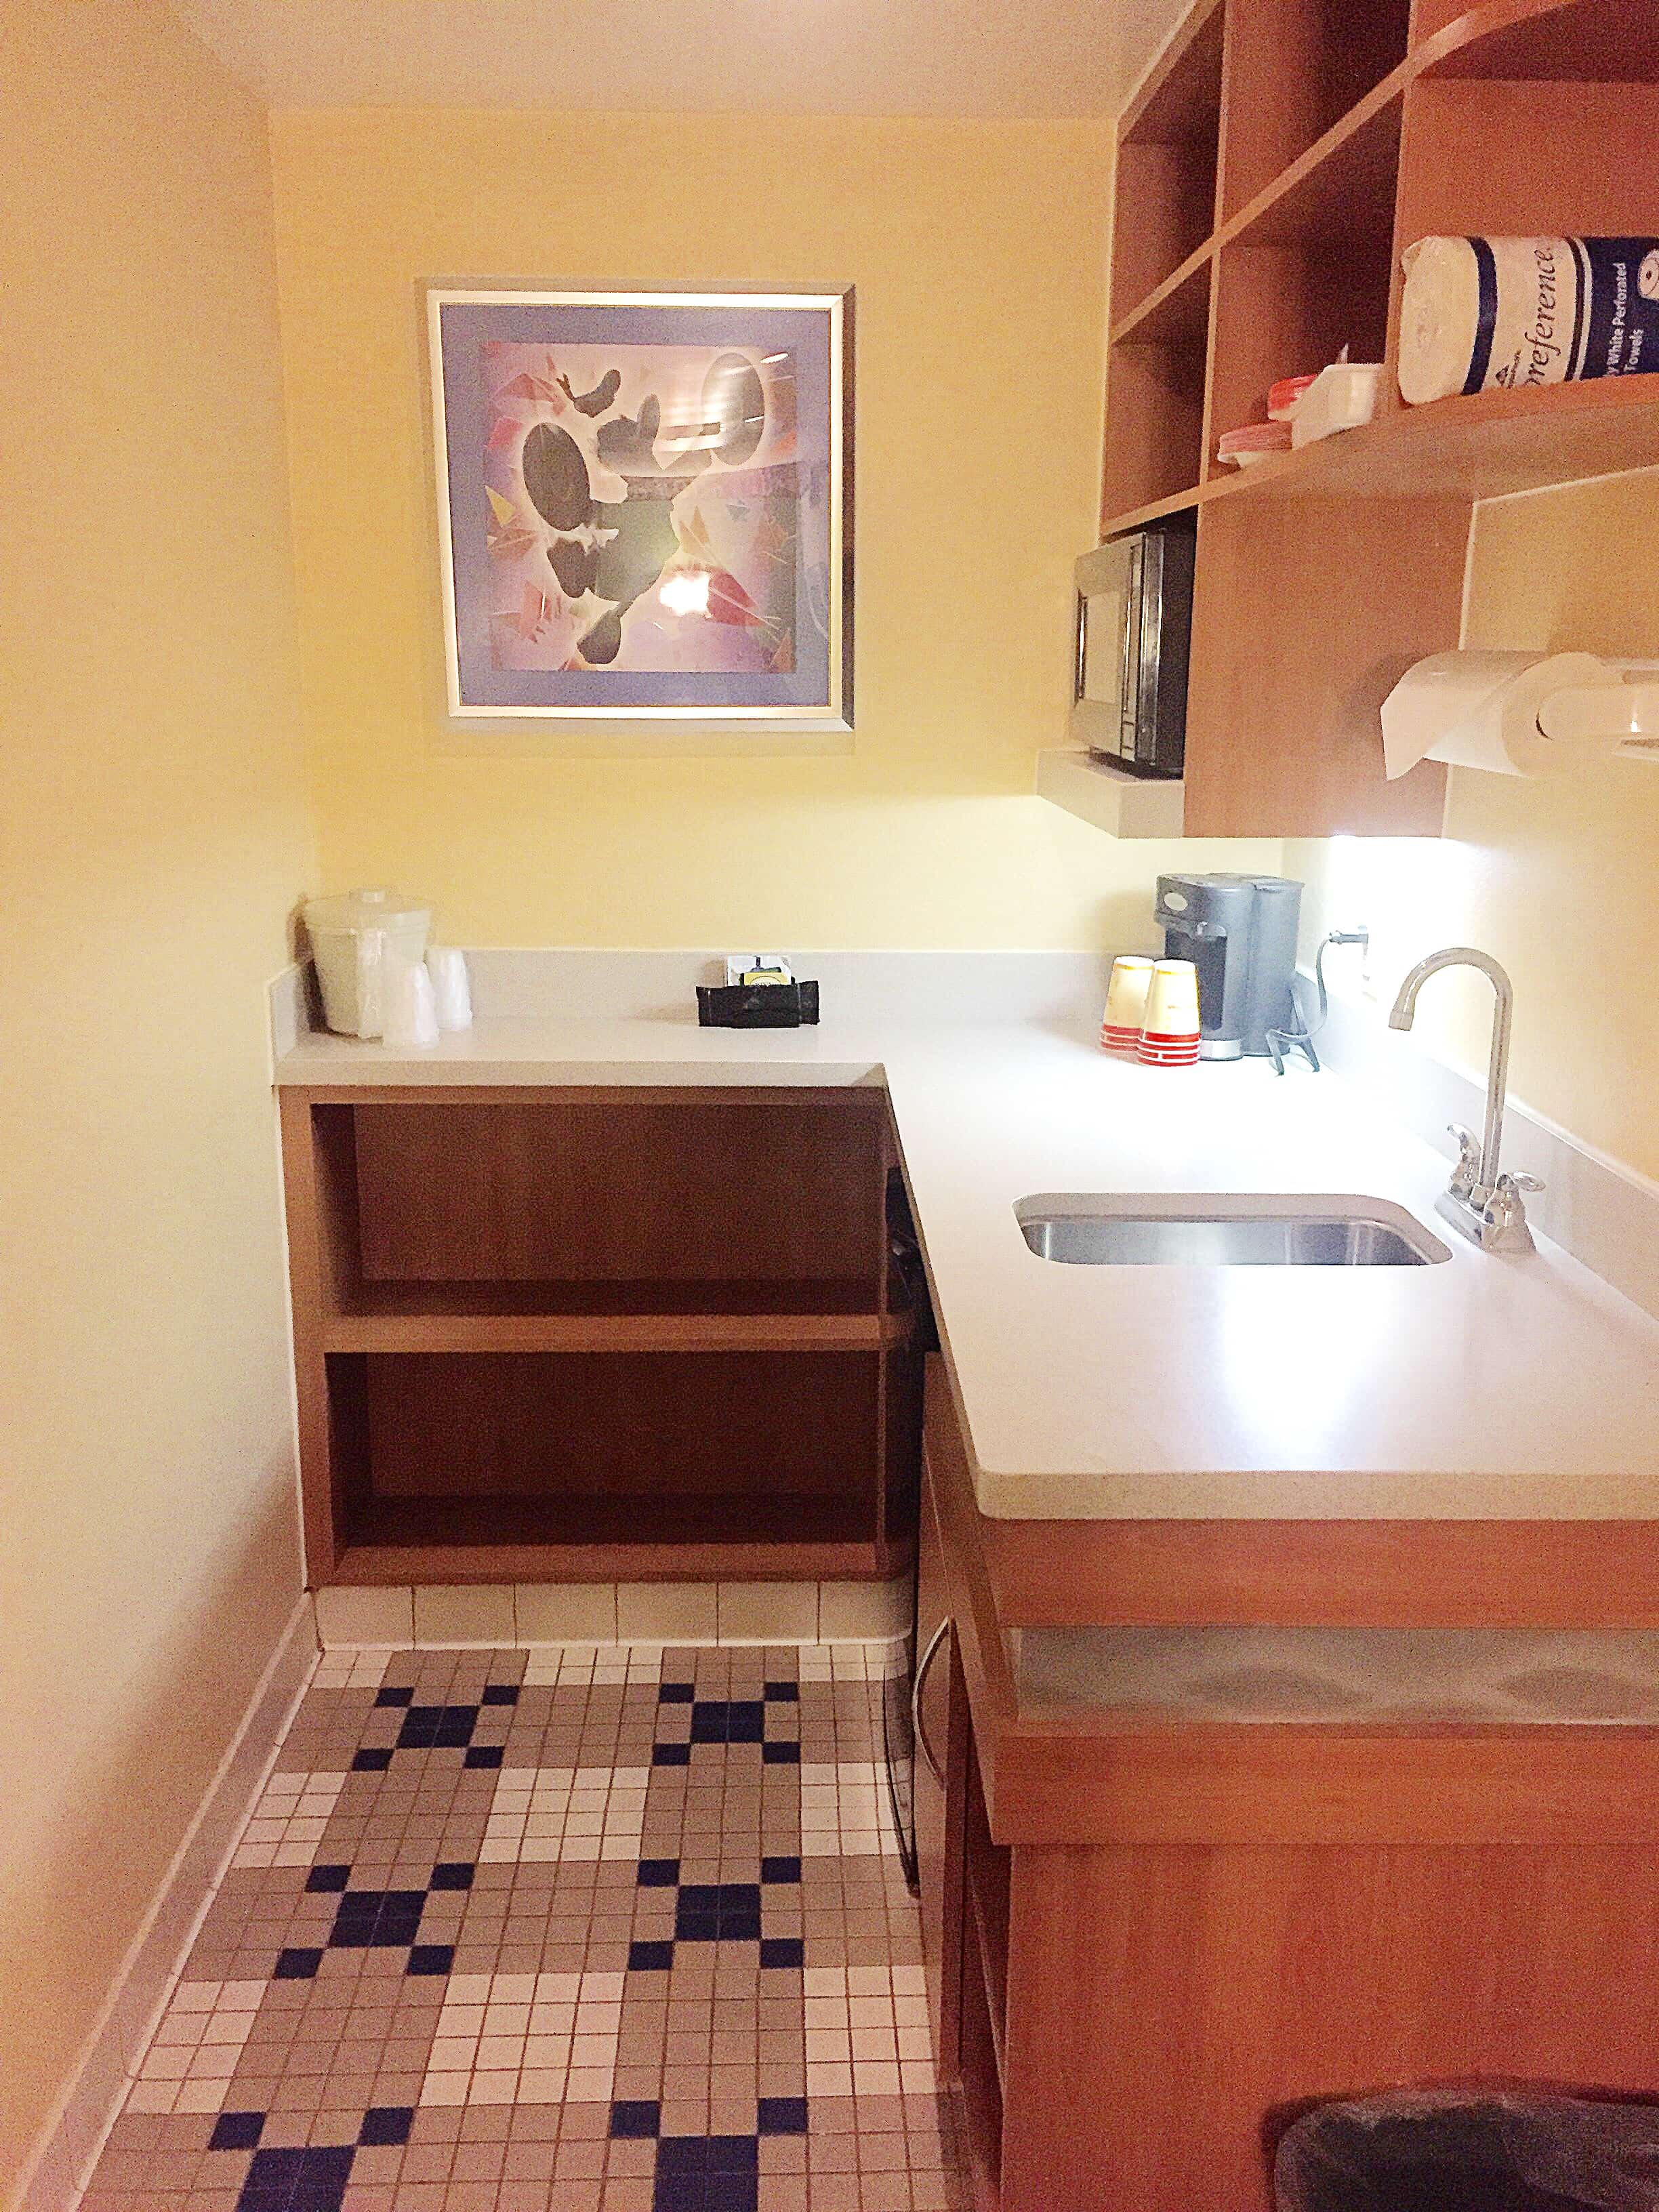 The kitchenette in an All-Star Music Disney World Family Suite